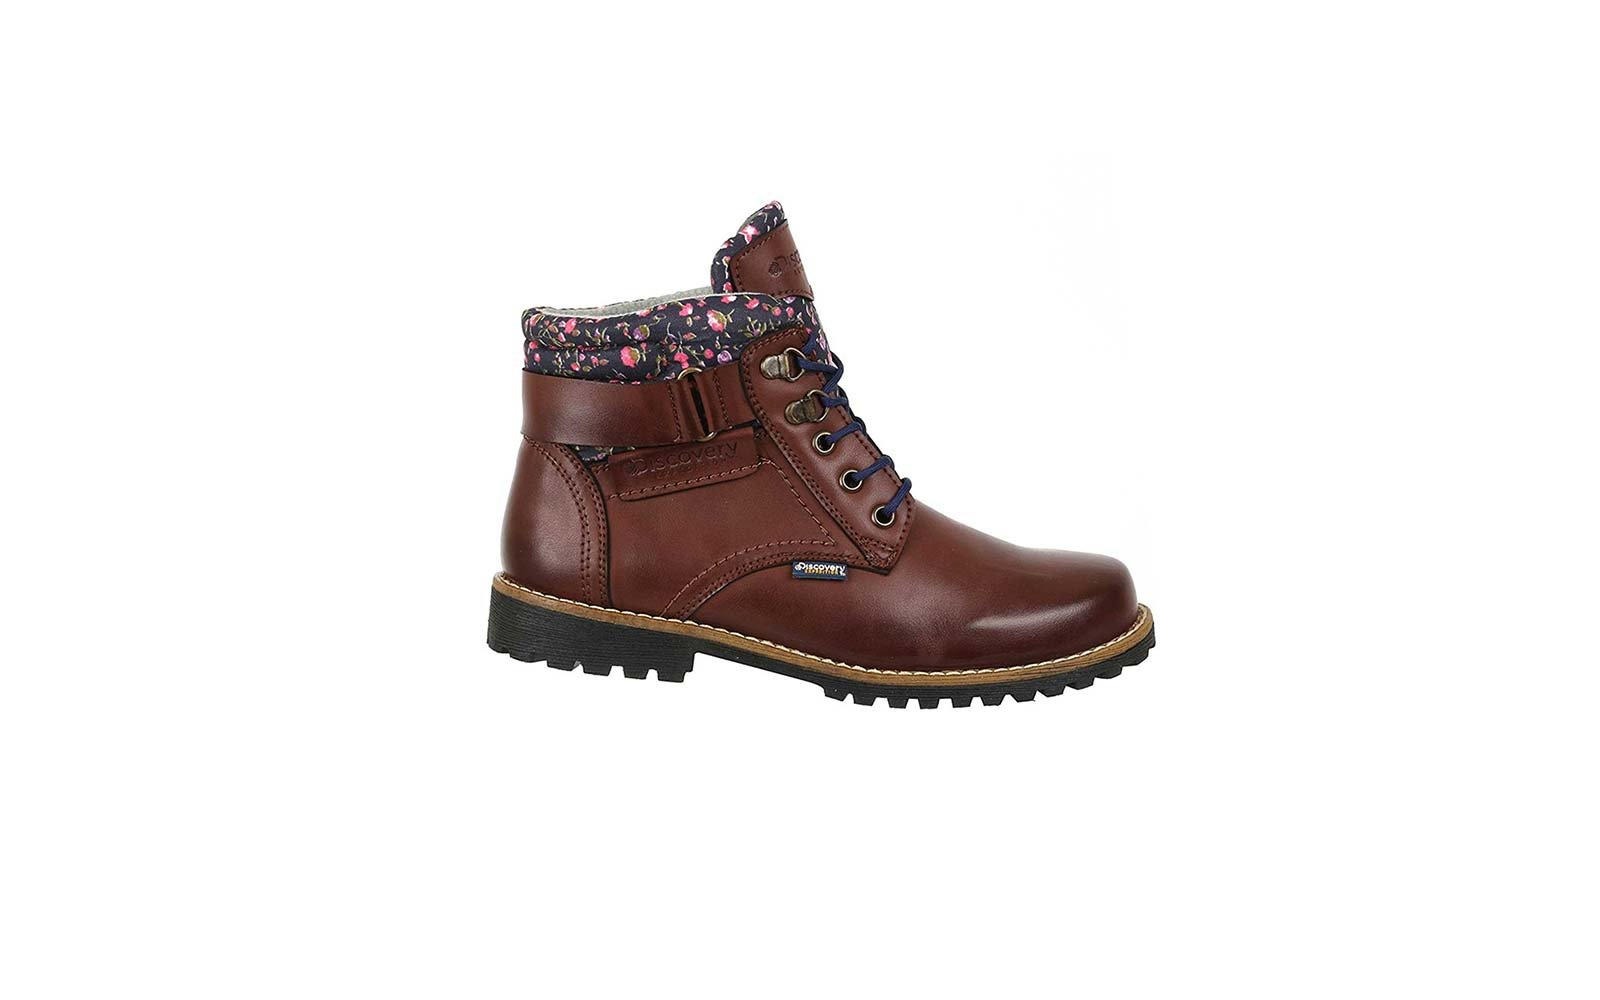 Best Hiking Boots Shoes For Woman